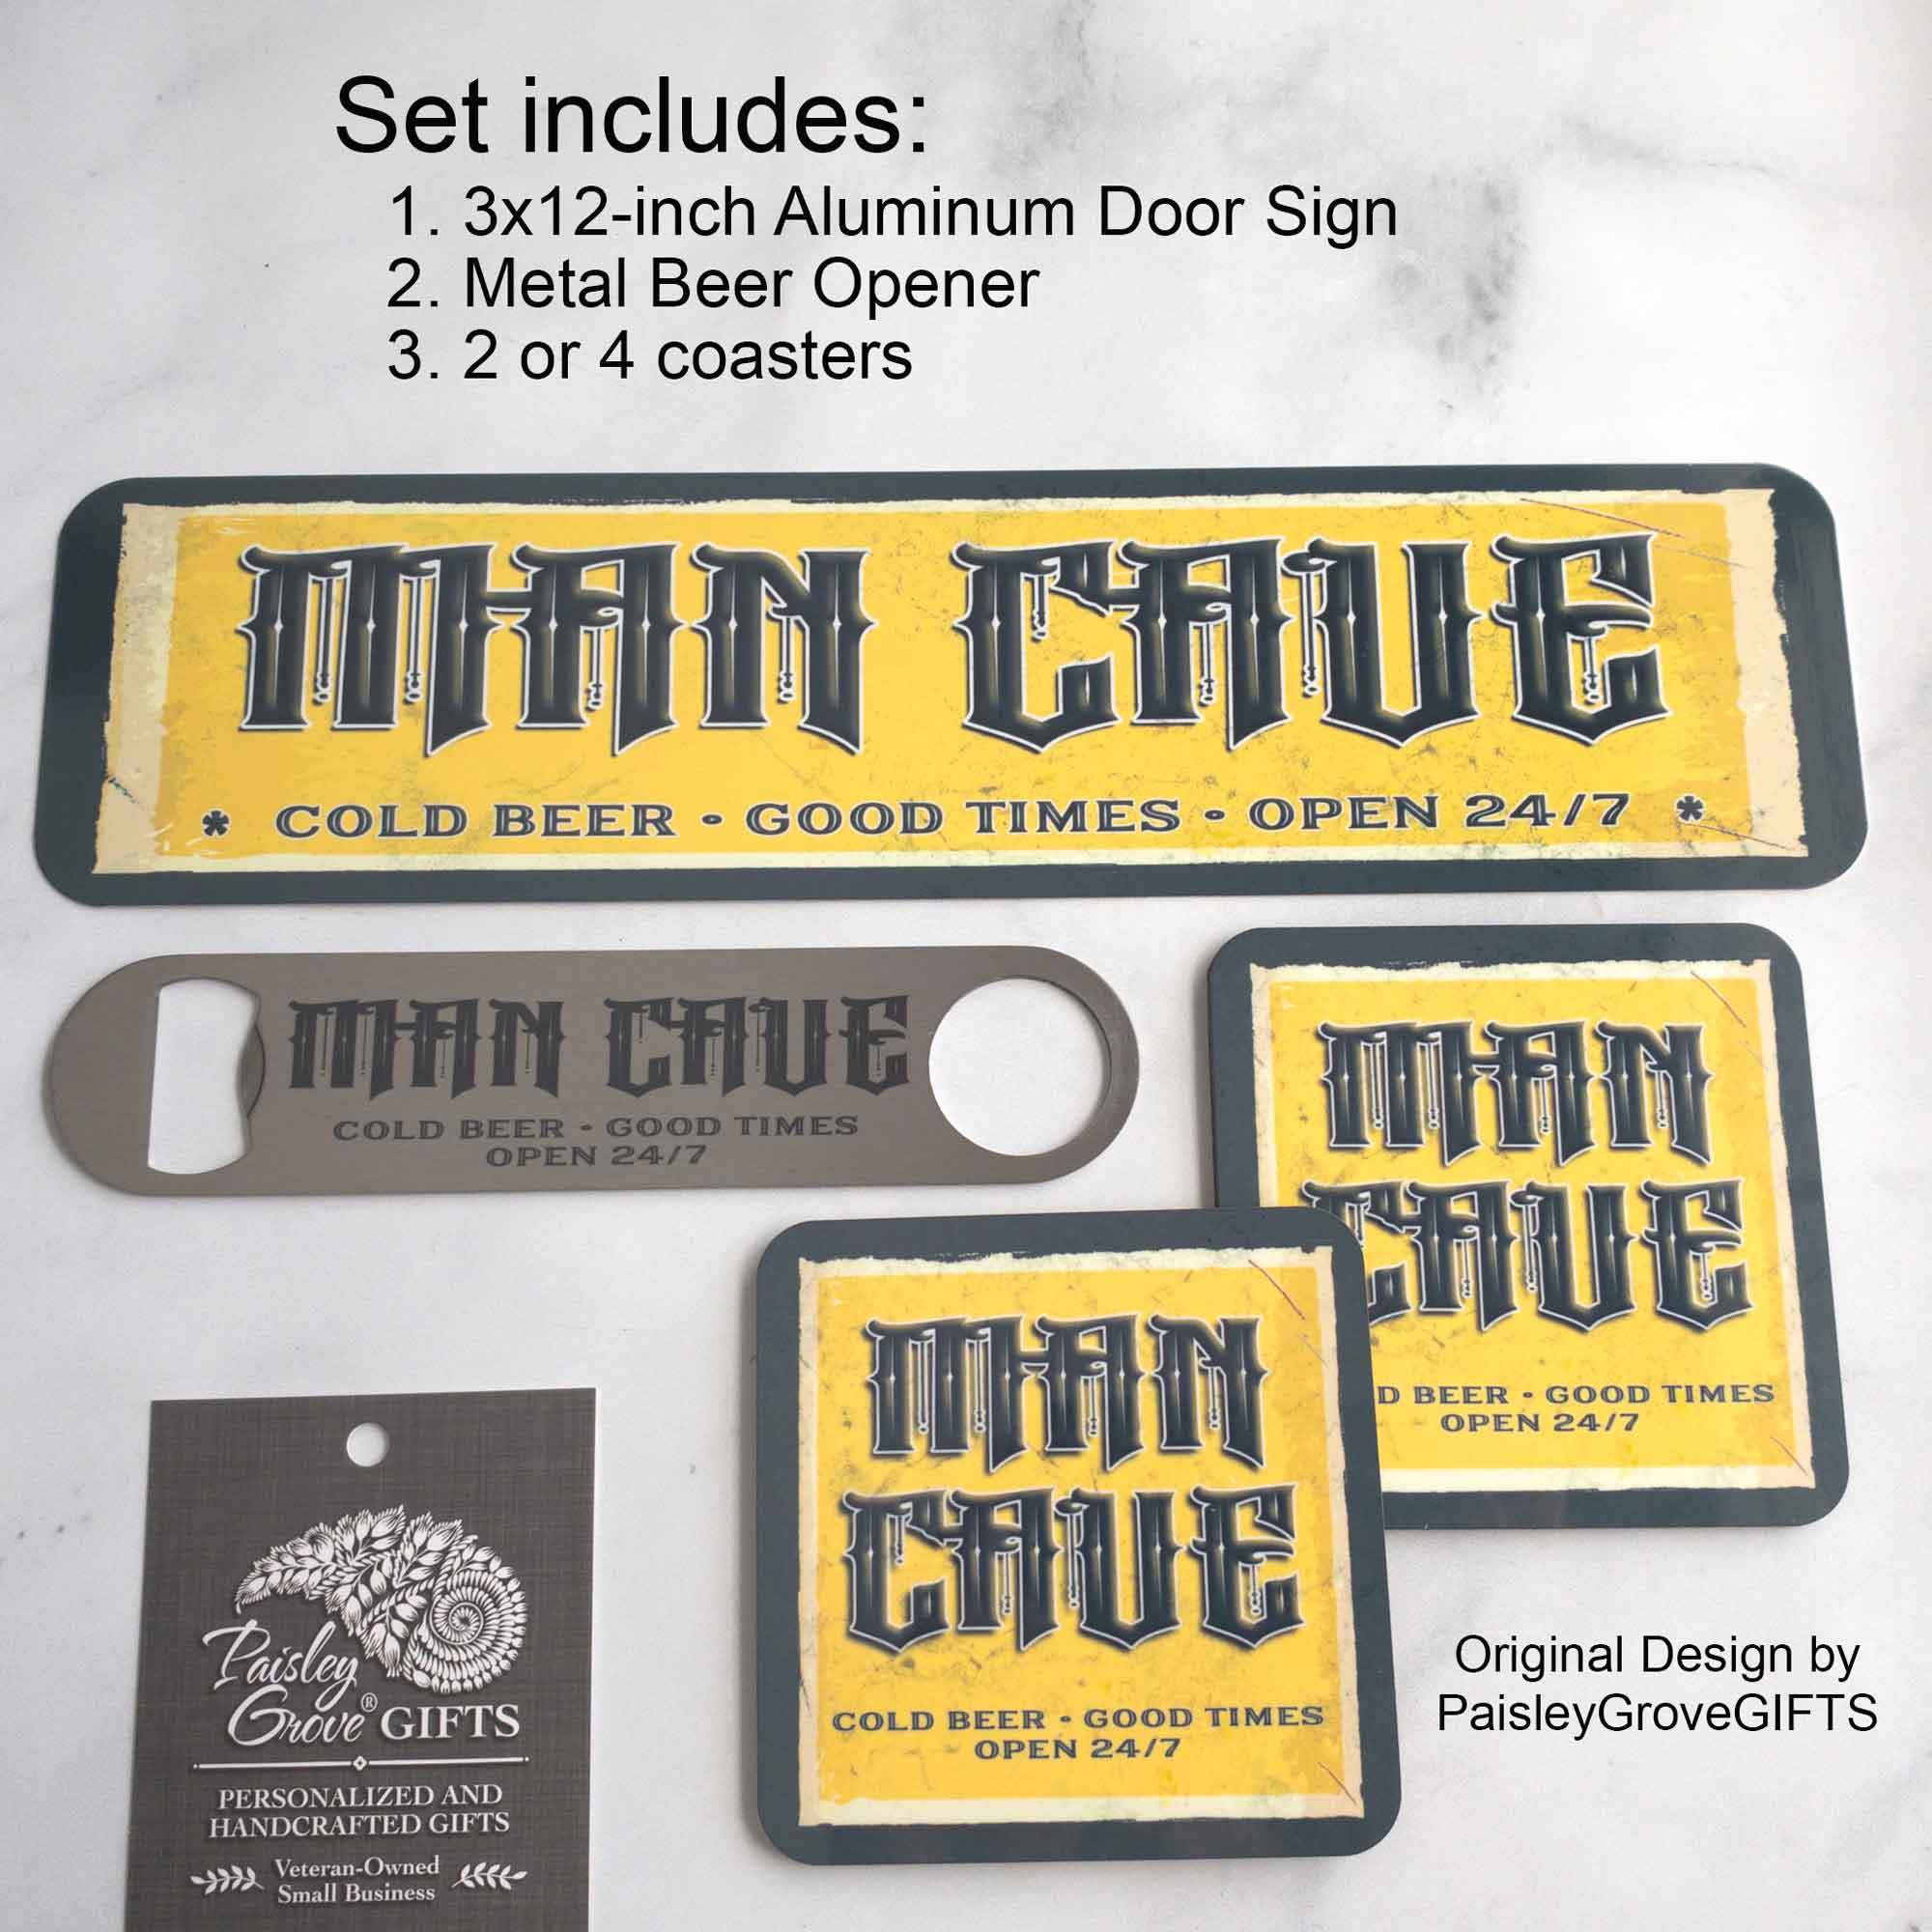 CopyrightPaisleyGroveGIFTS S957b Man cave decor set includes door sign or wall sign, coasters, and beer bottle opener